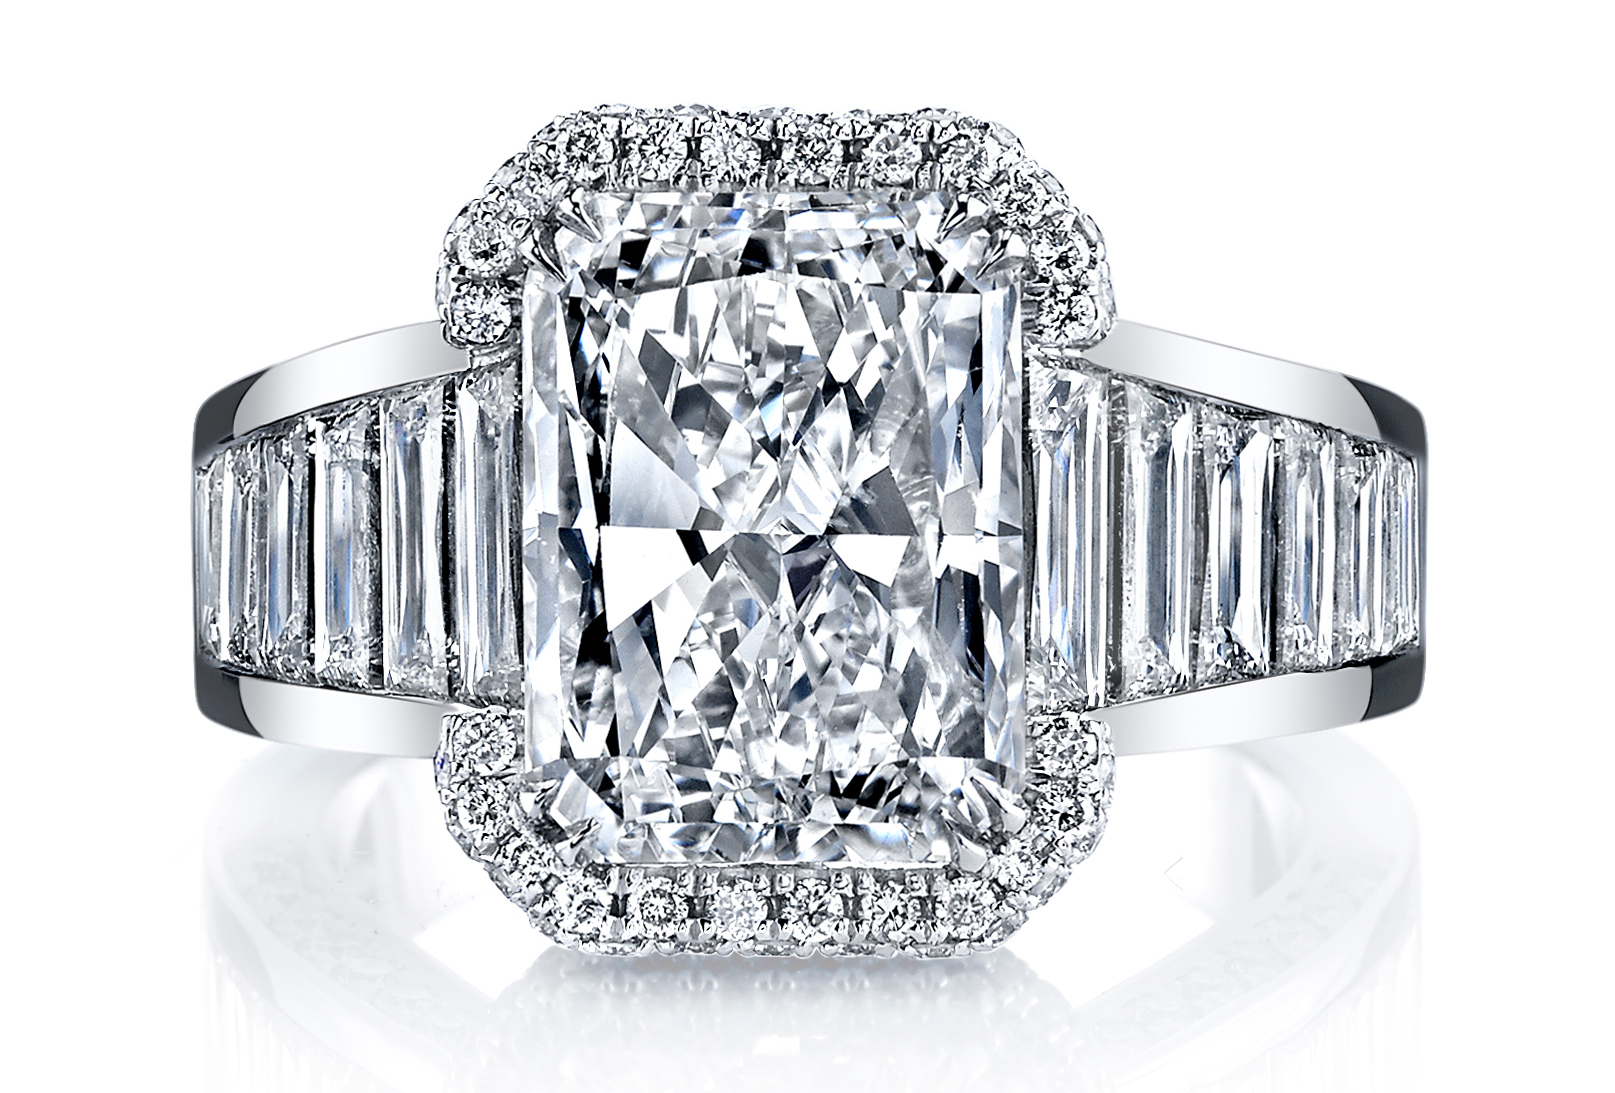 Joshua J emerald-cut diamond ring | JCK On Your Market